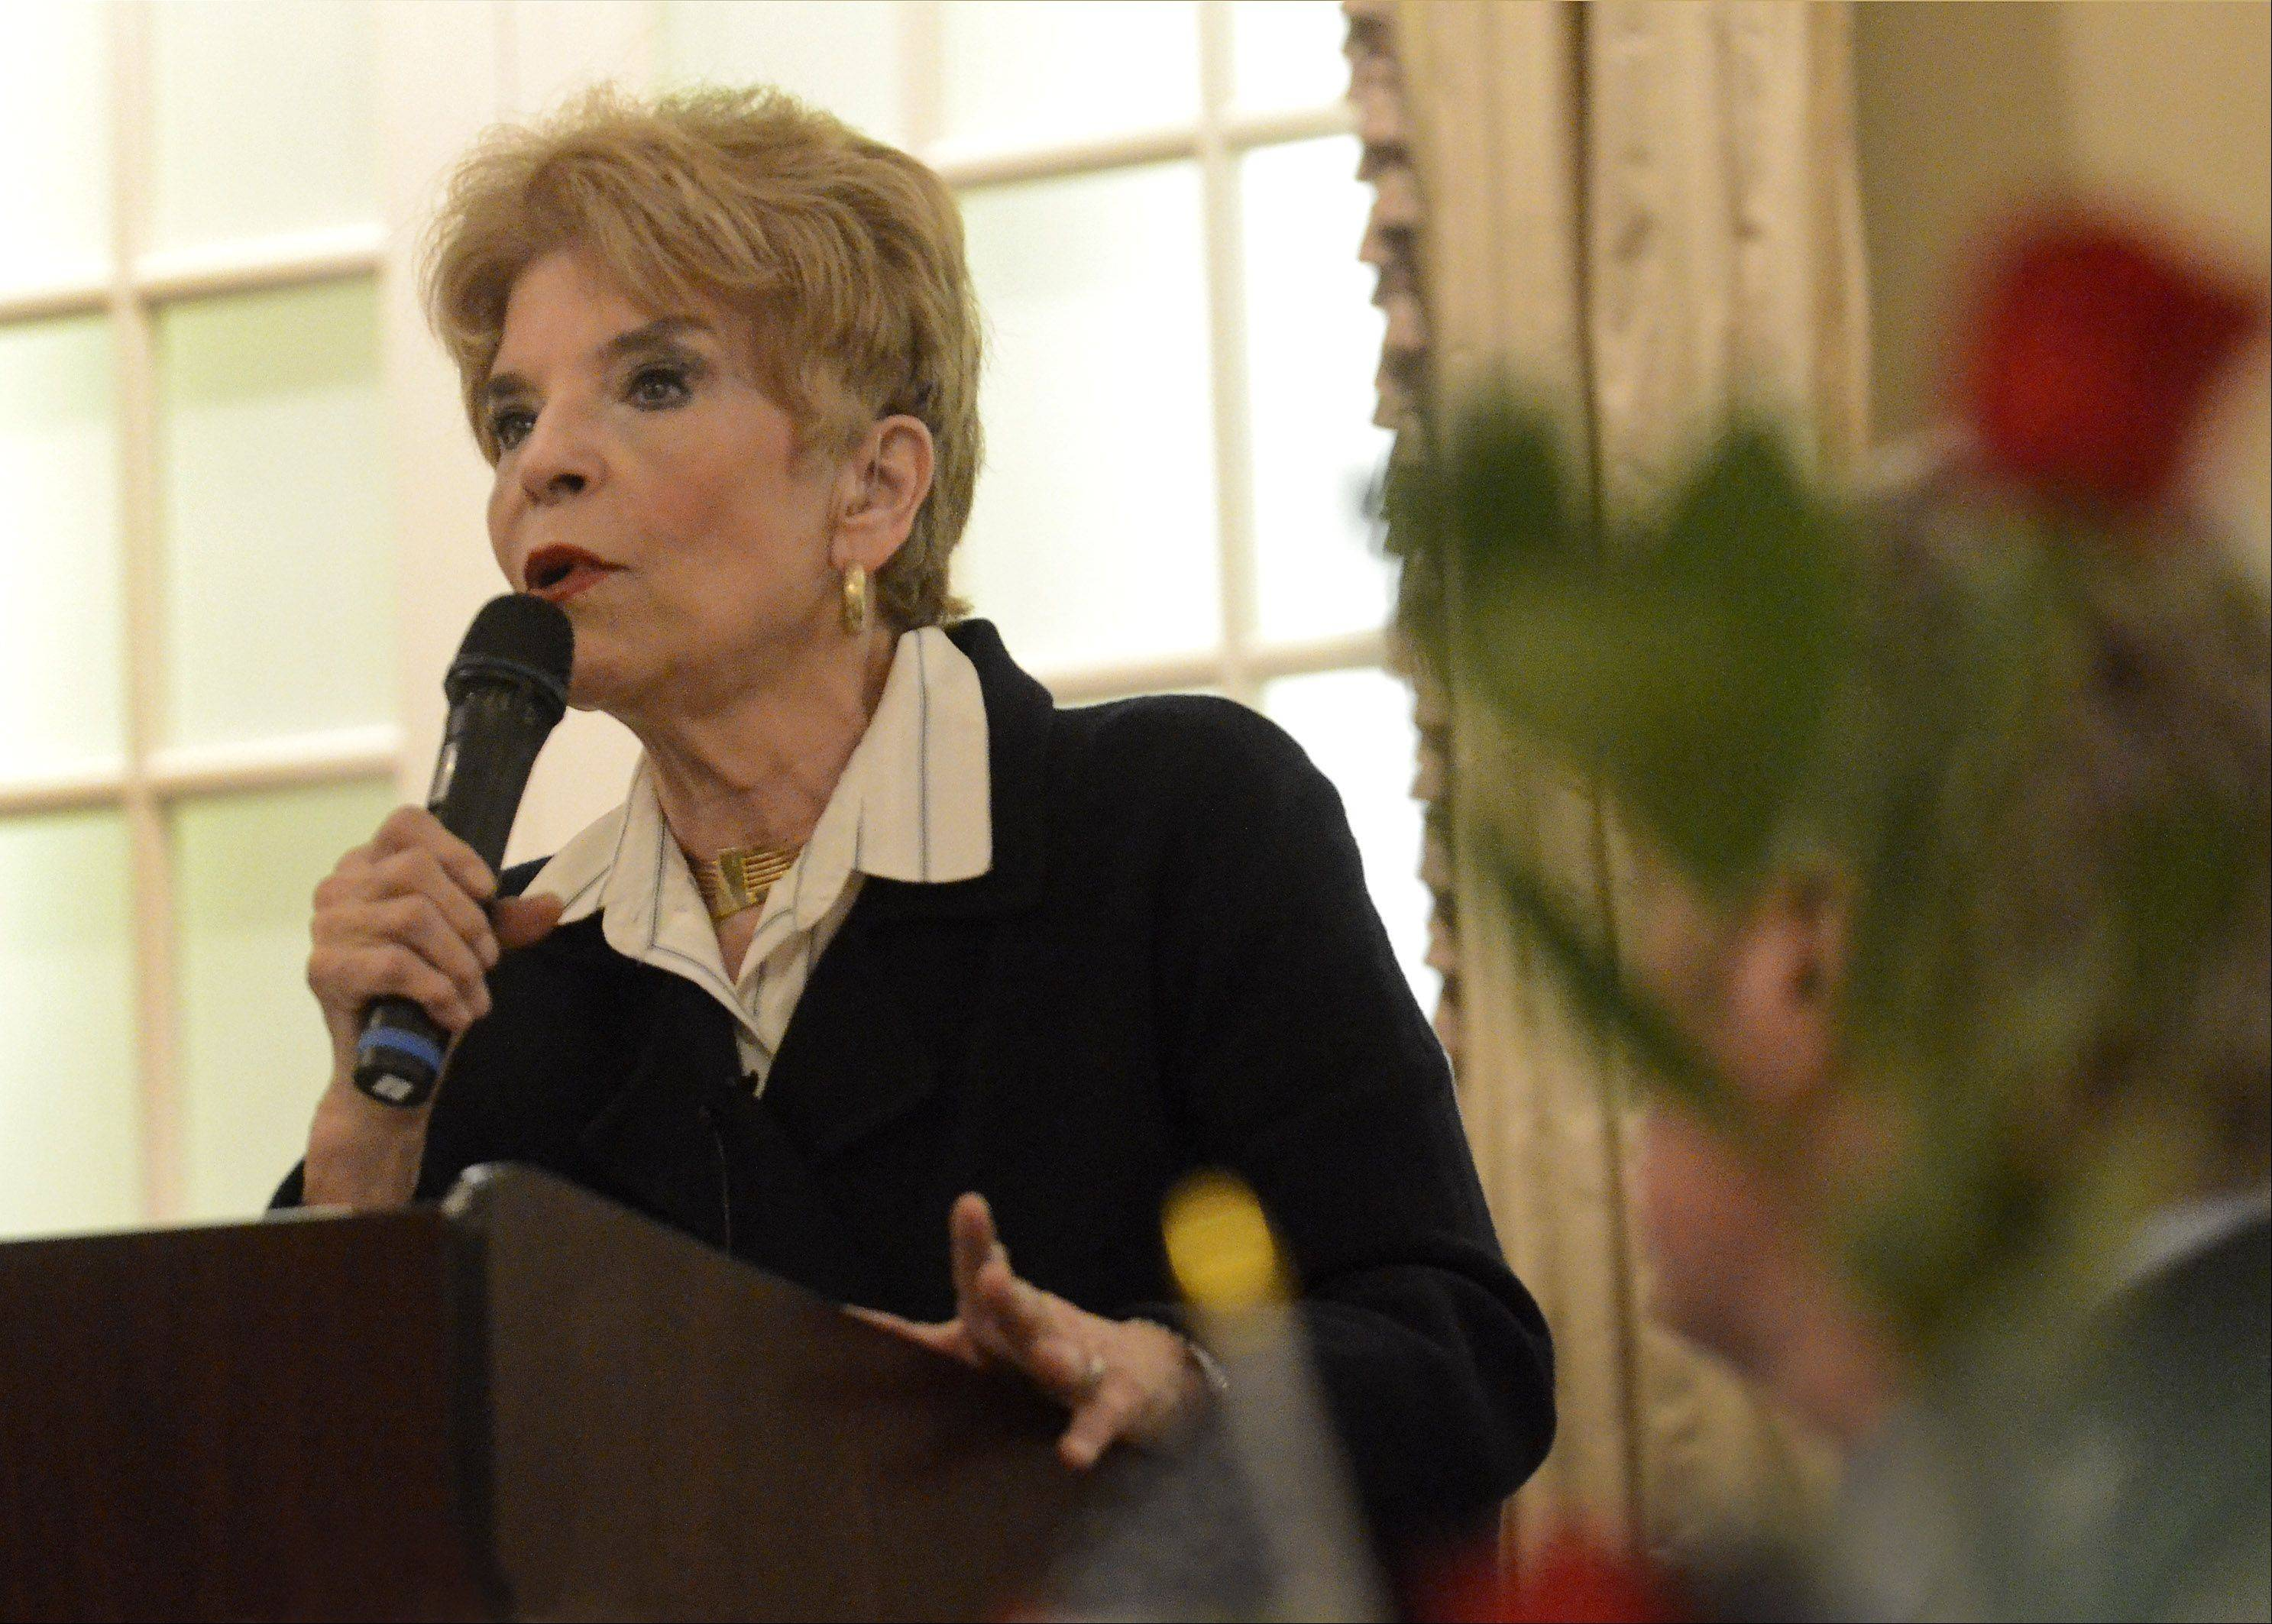 Illinois Comptroller Judy Baar Topinka speaking at the Biz6 Plus Multi-Chamber Collaboration Business Luncheon.